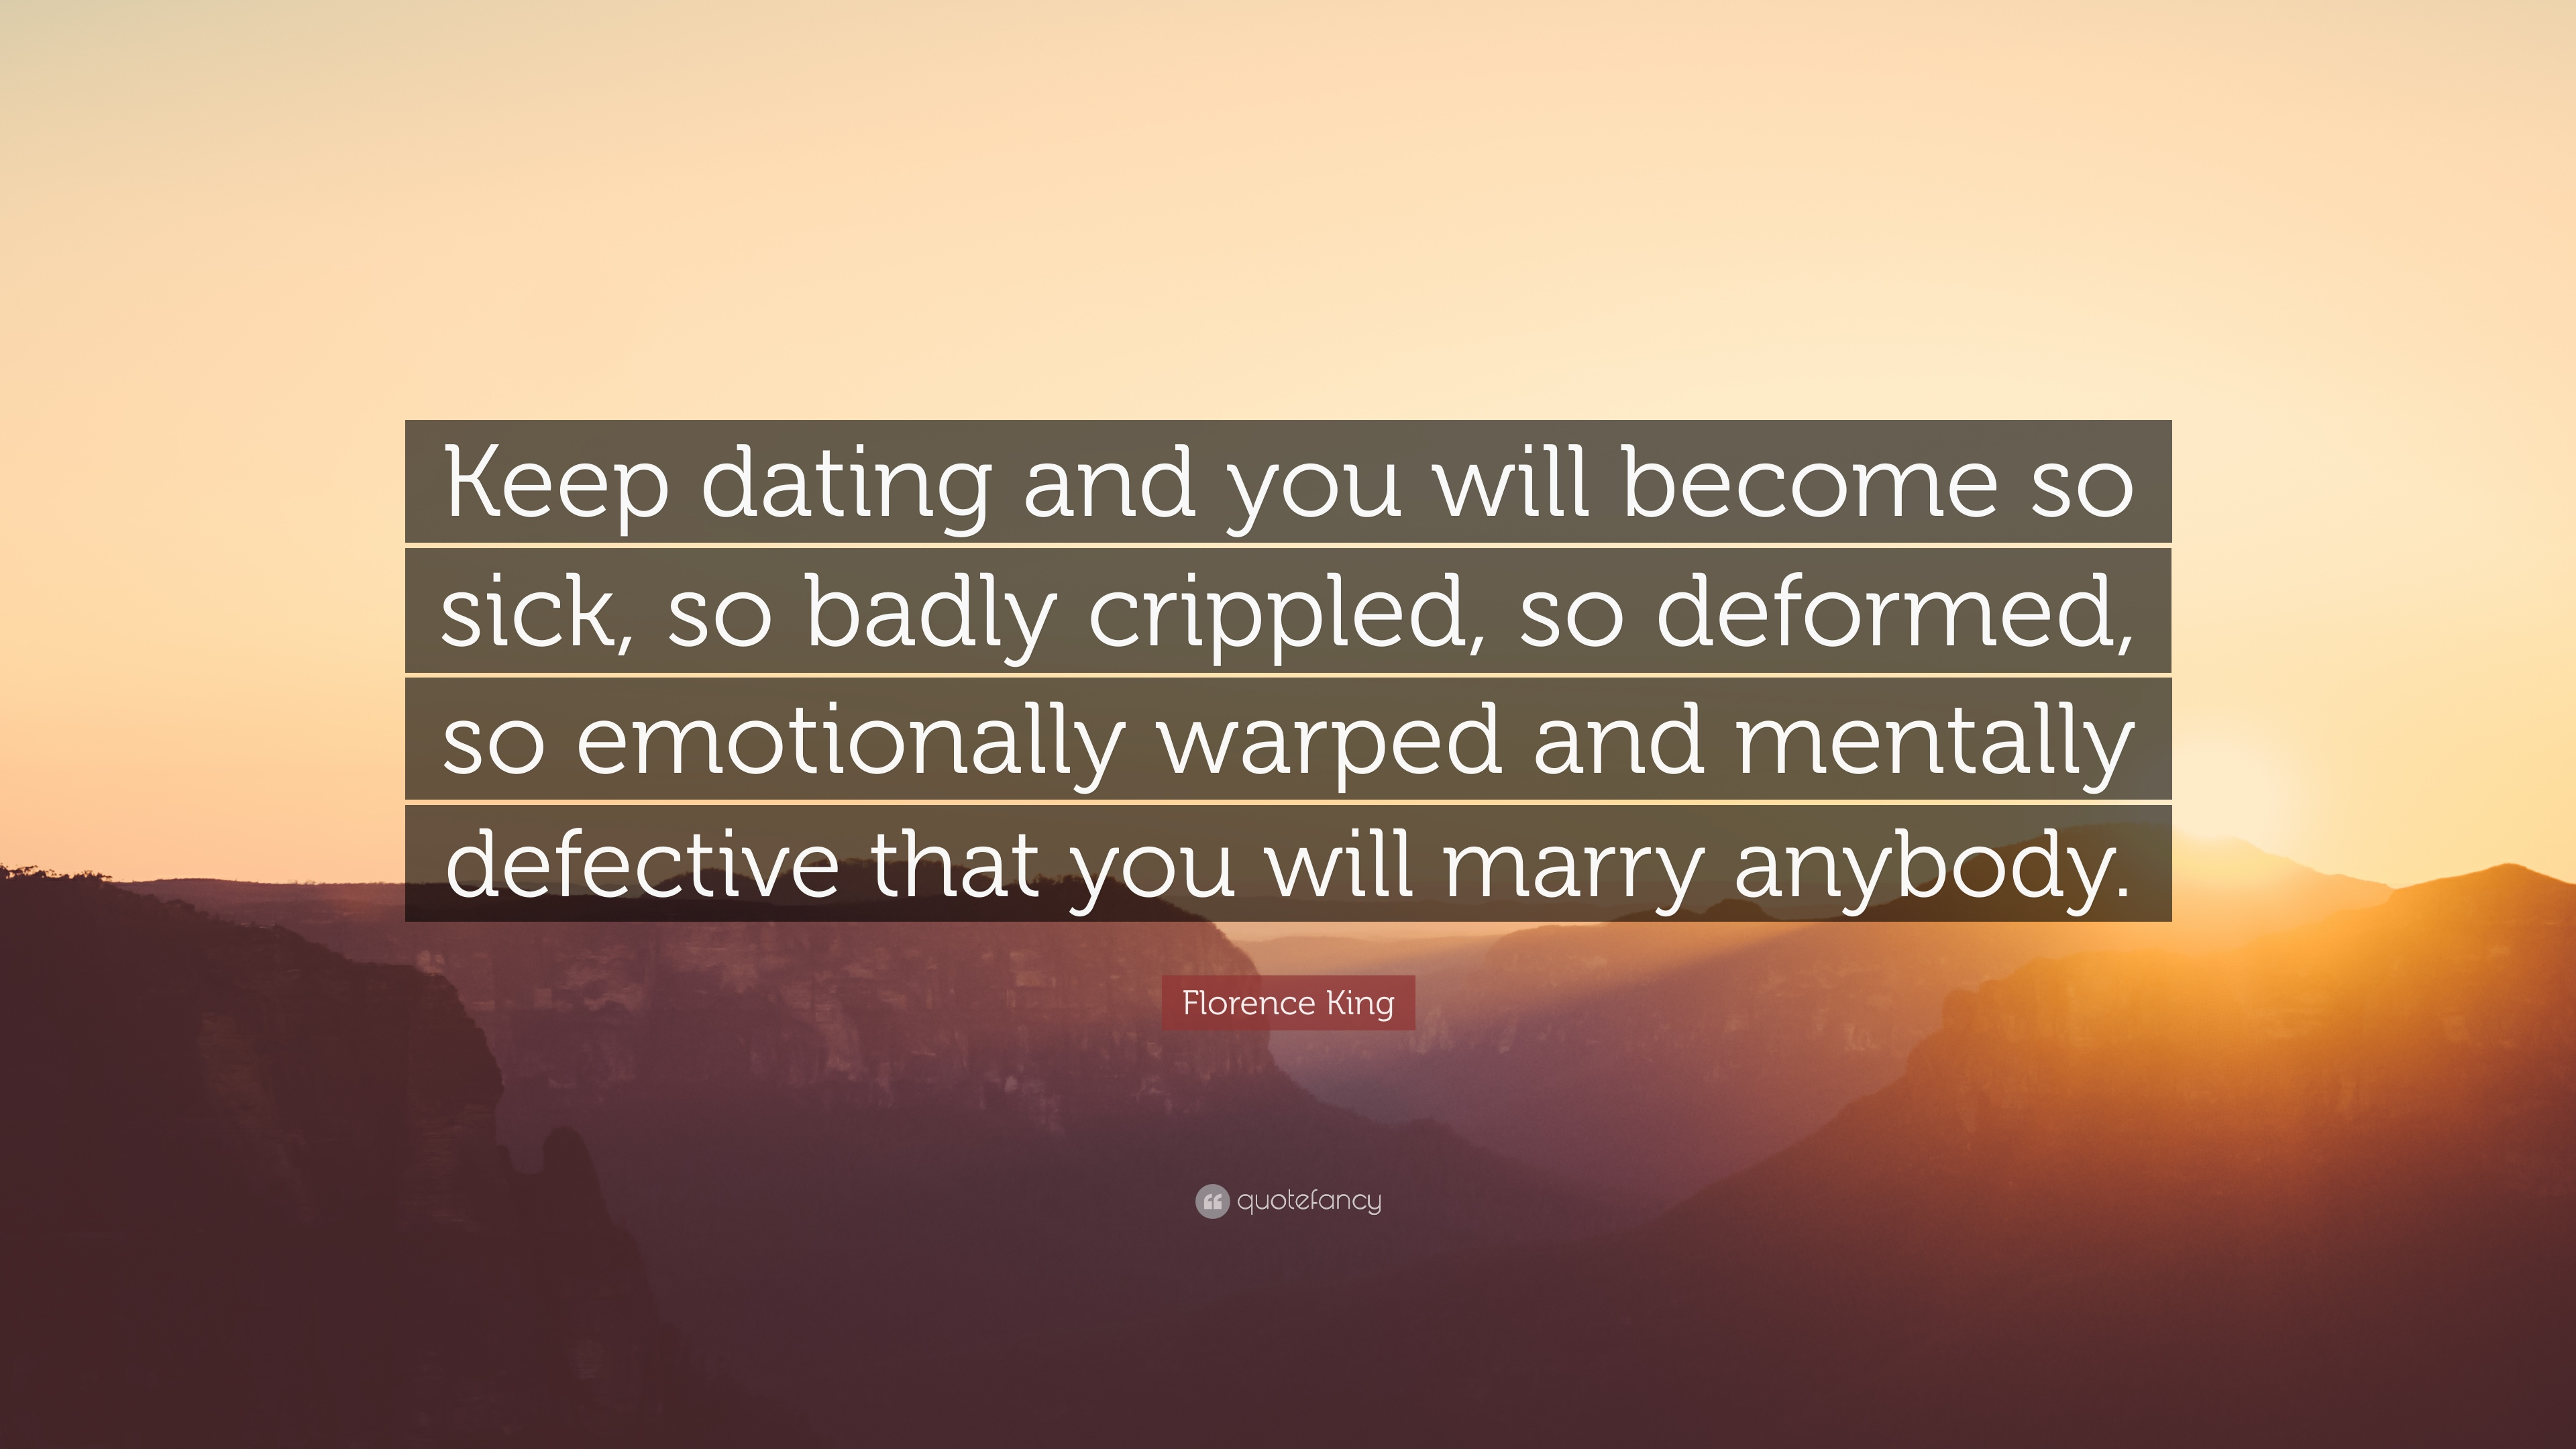 deformed dating pros and cons of dating a woman 10 years older